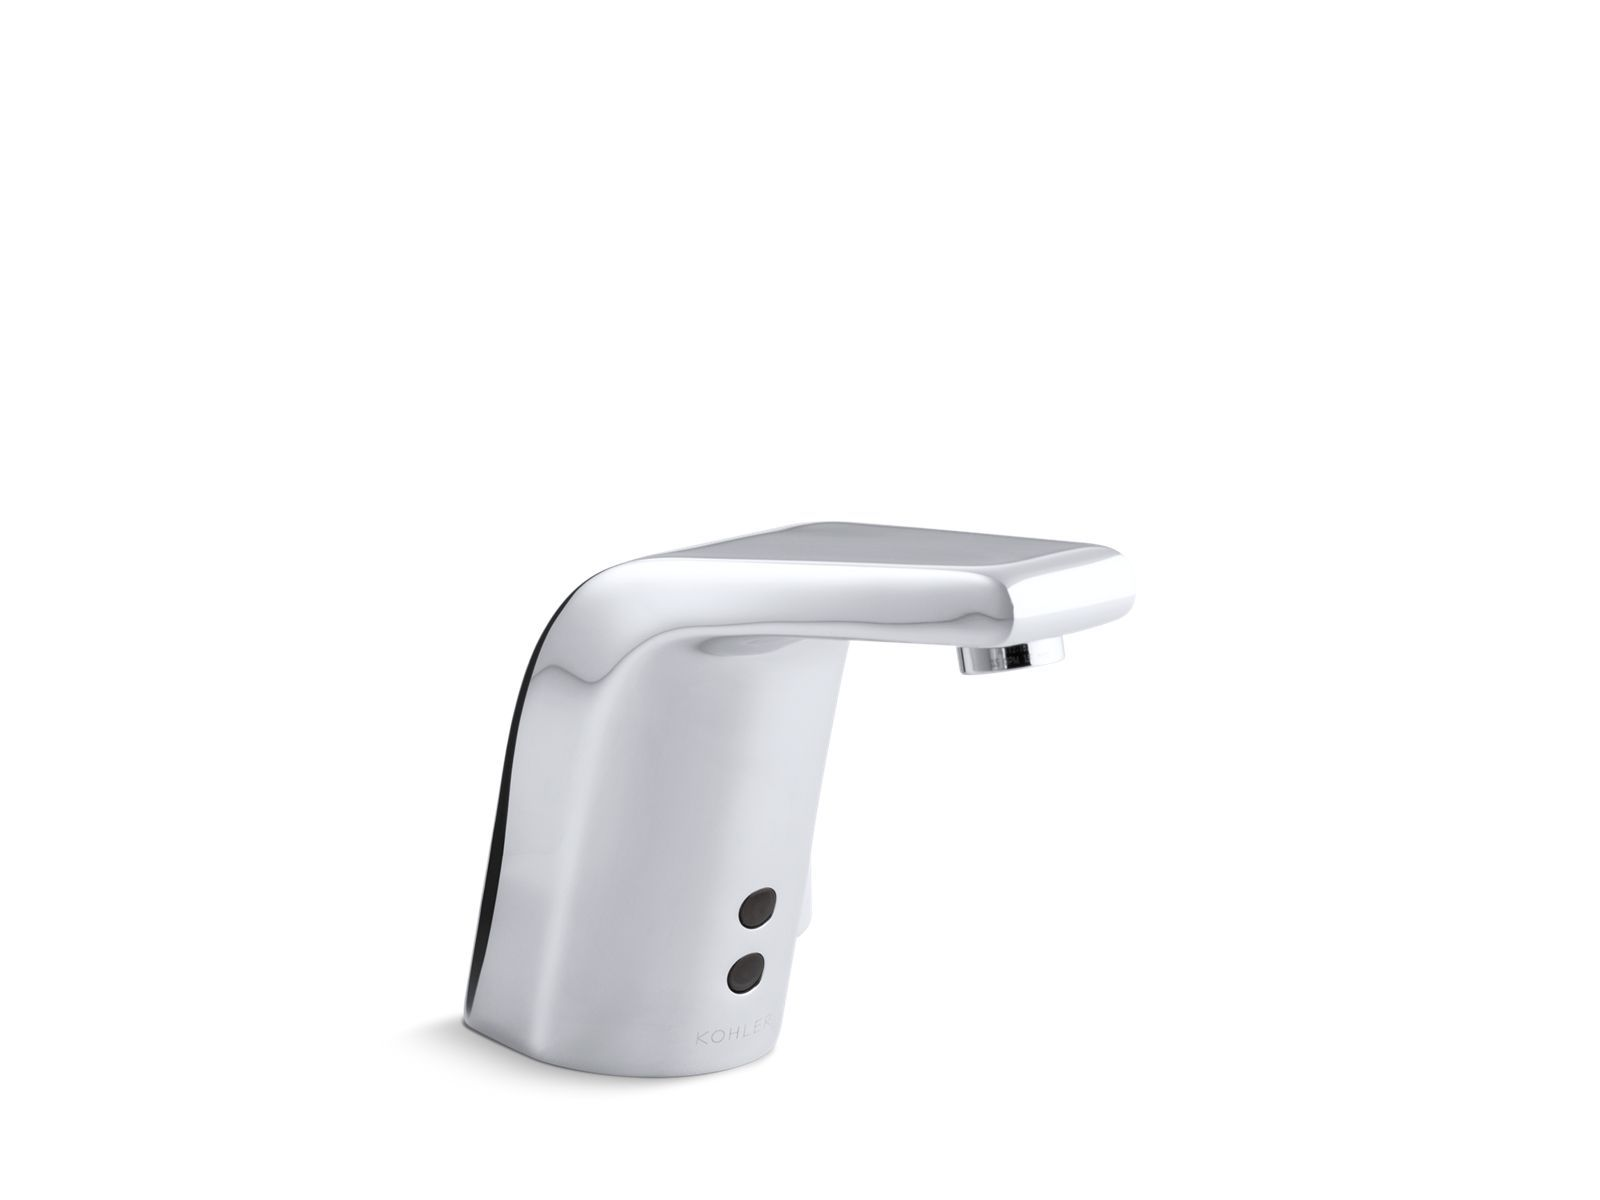 Sculpted Single-Hole Touchless AC-Powered Commercial Bathroom Sink Faucet with Insight Technology